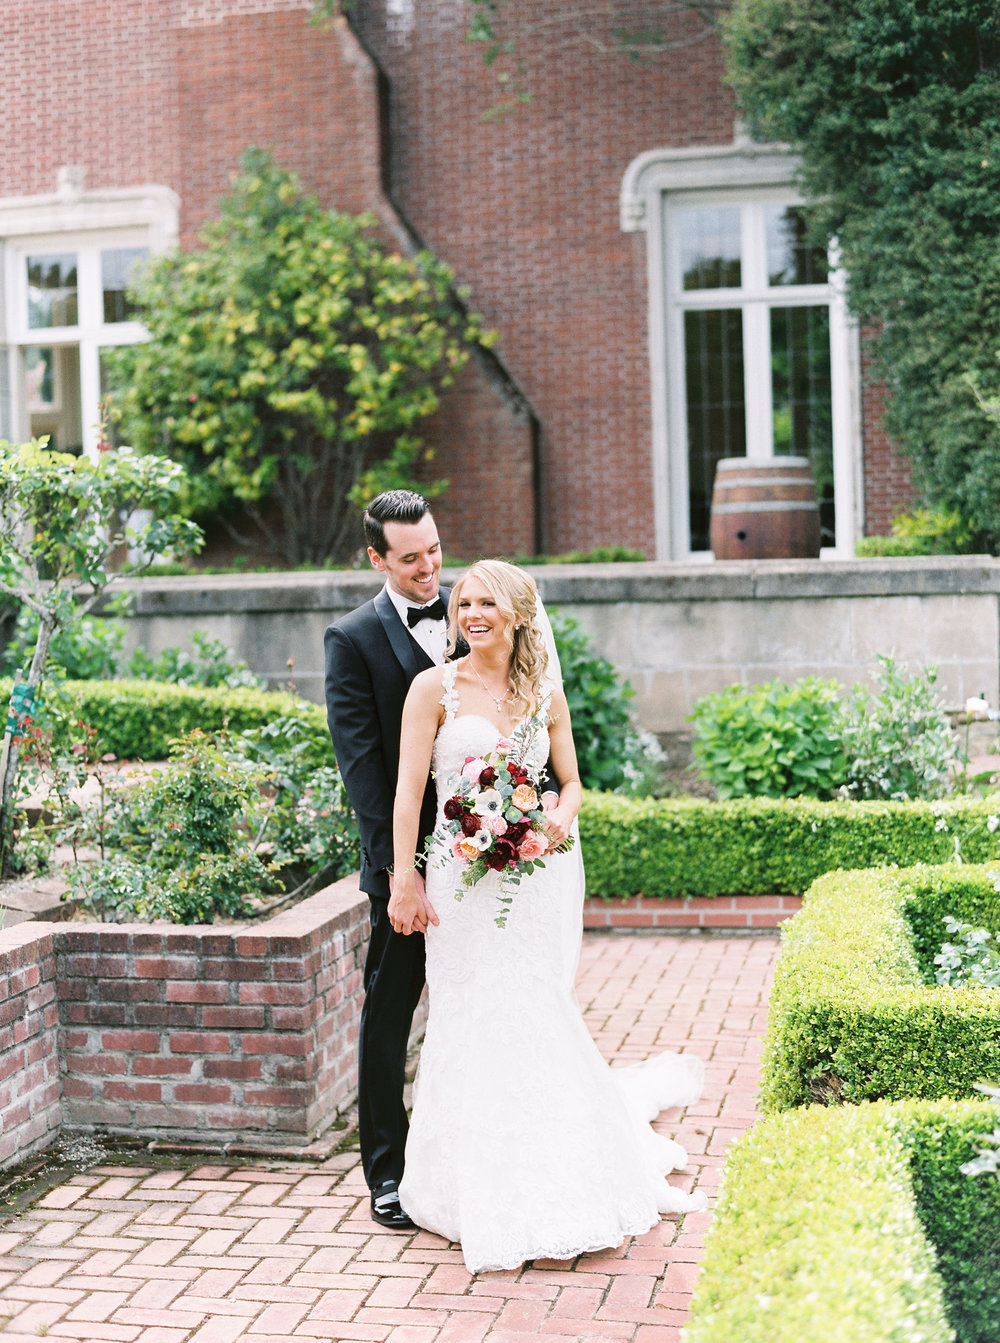 spring-inspired-wedding-at-kohl-mansion-burlingame-california-80.jpg